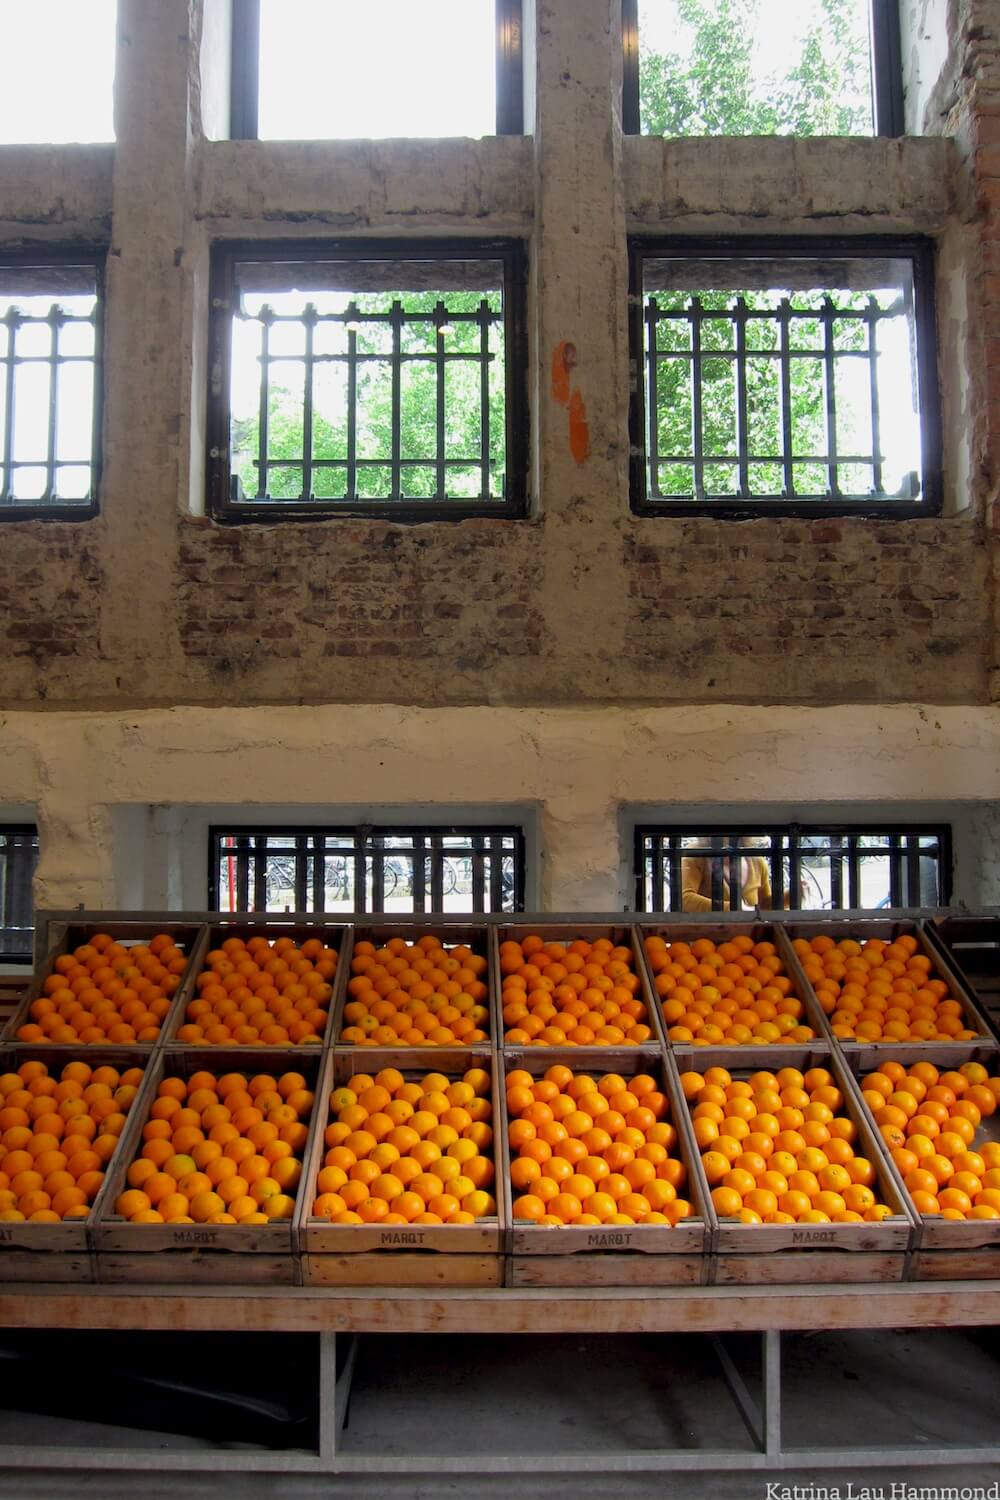 Oranges_in_Amsterdam_KLH.jpg